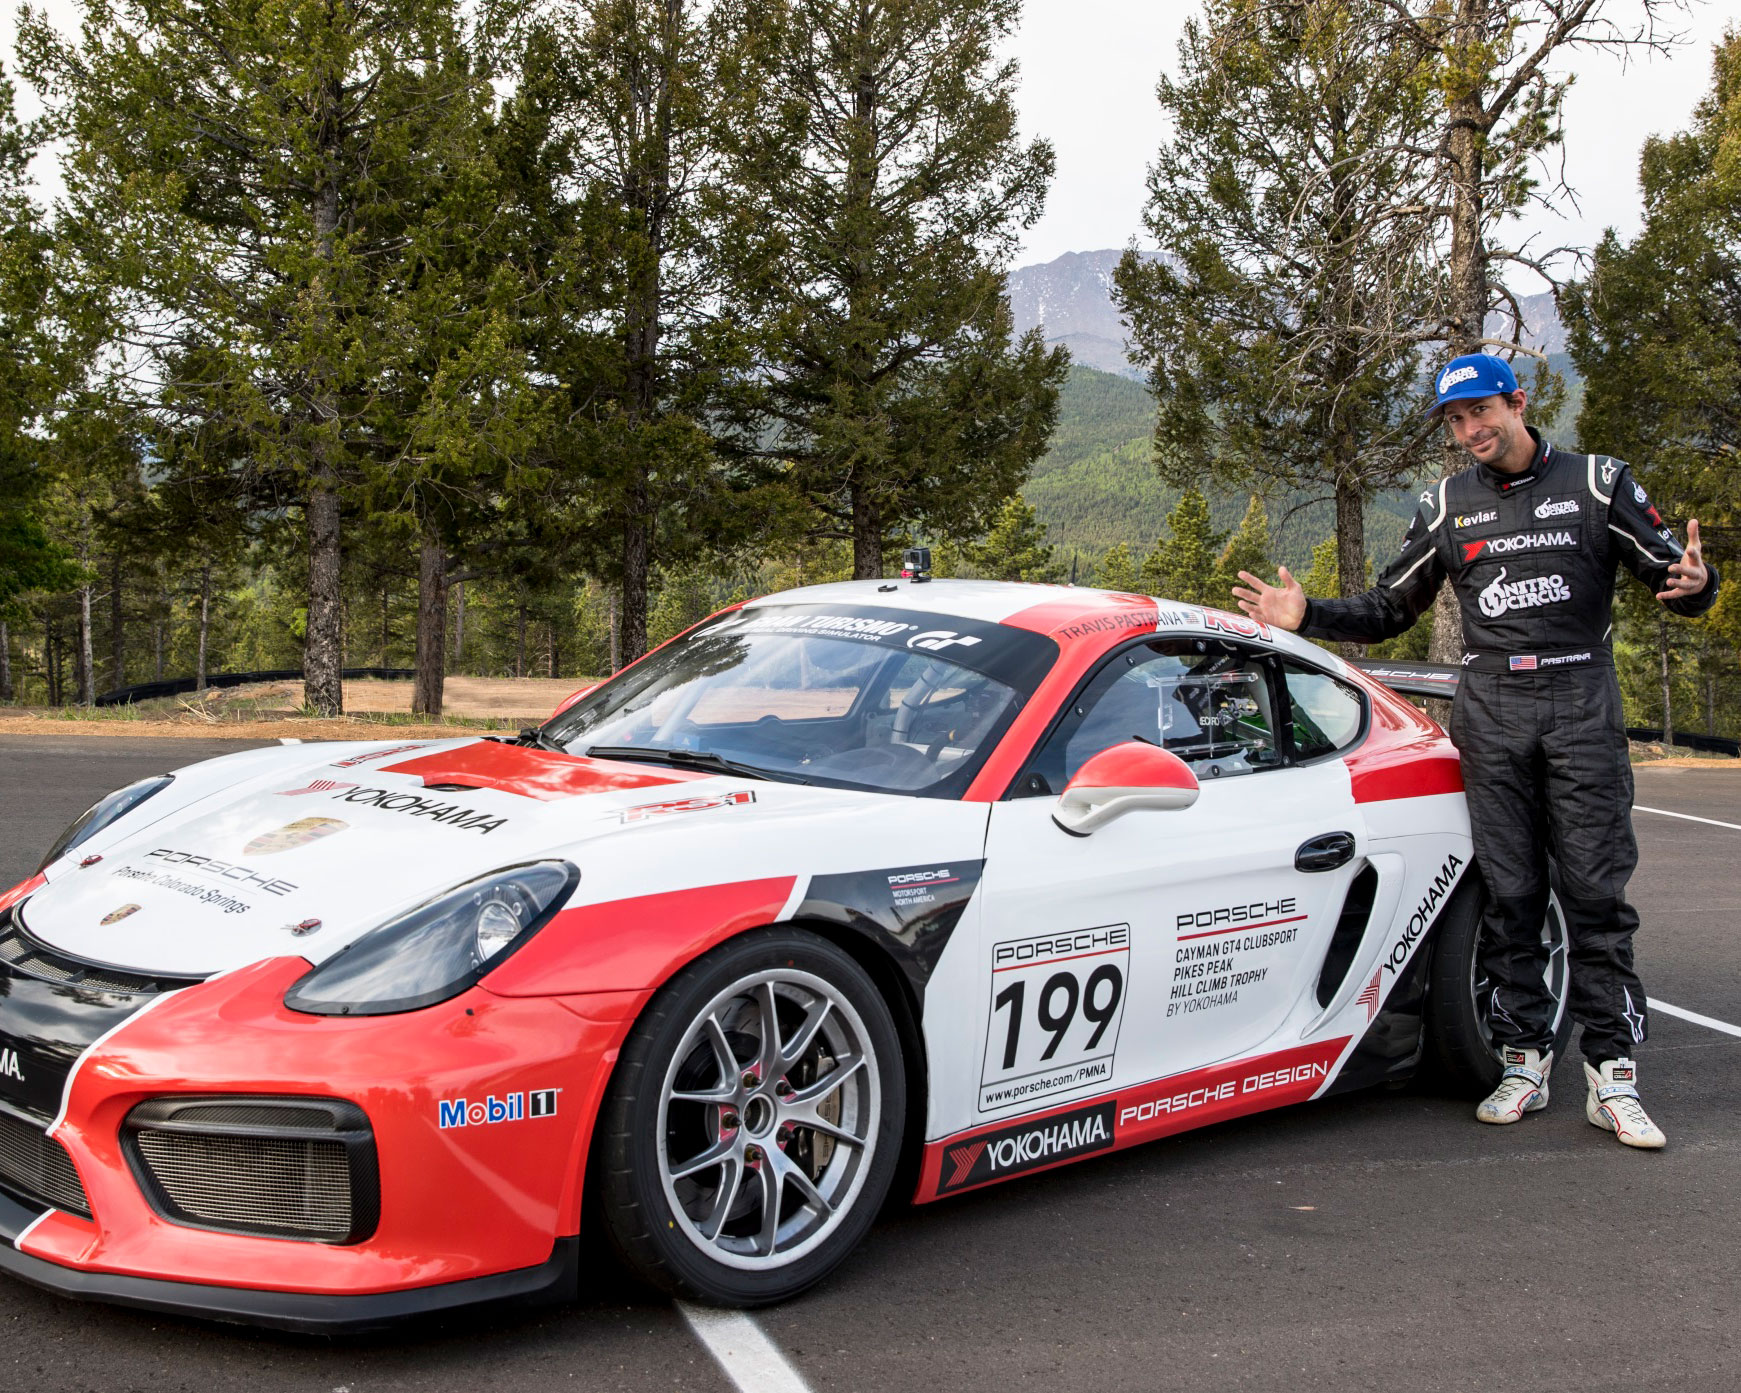 Yokohama Tire and Travis Pastrana Ready to Take on the Mountain in New Porsche Pikes Peak Class